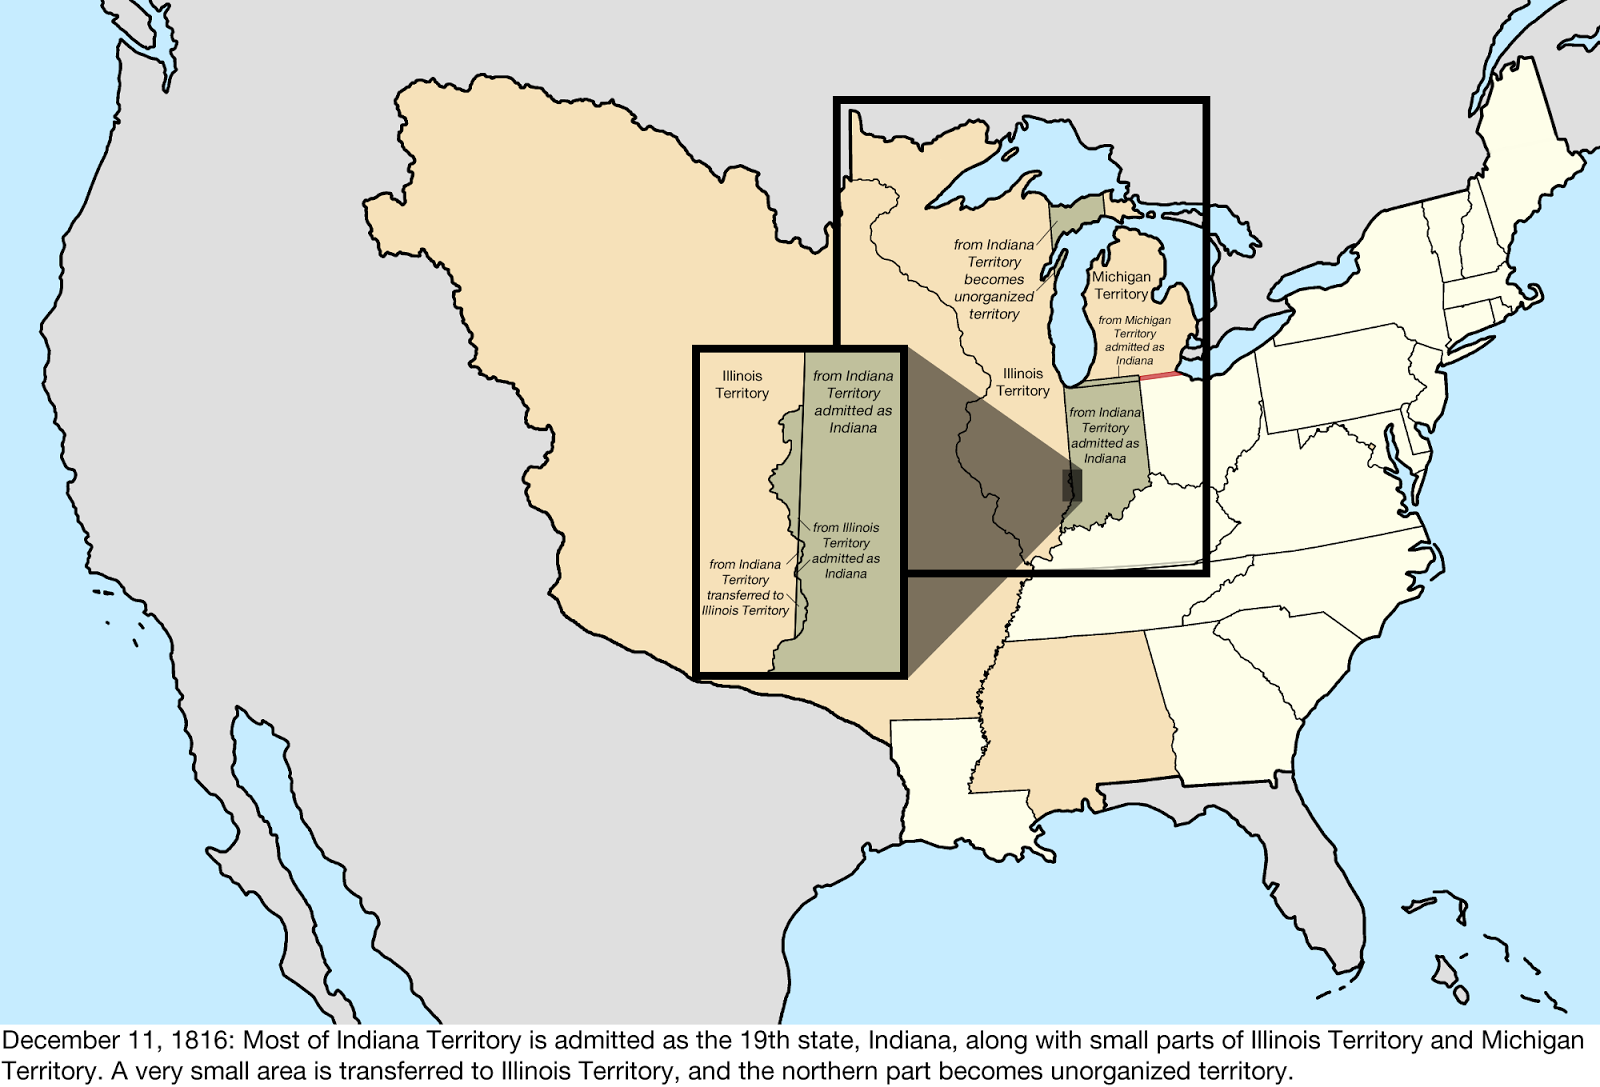 fantastic find maps from territorial evolution of the united states wikipedia article by user golbez